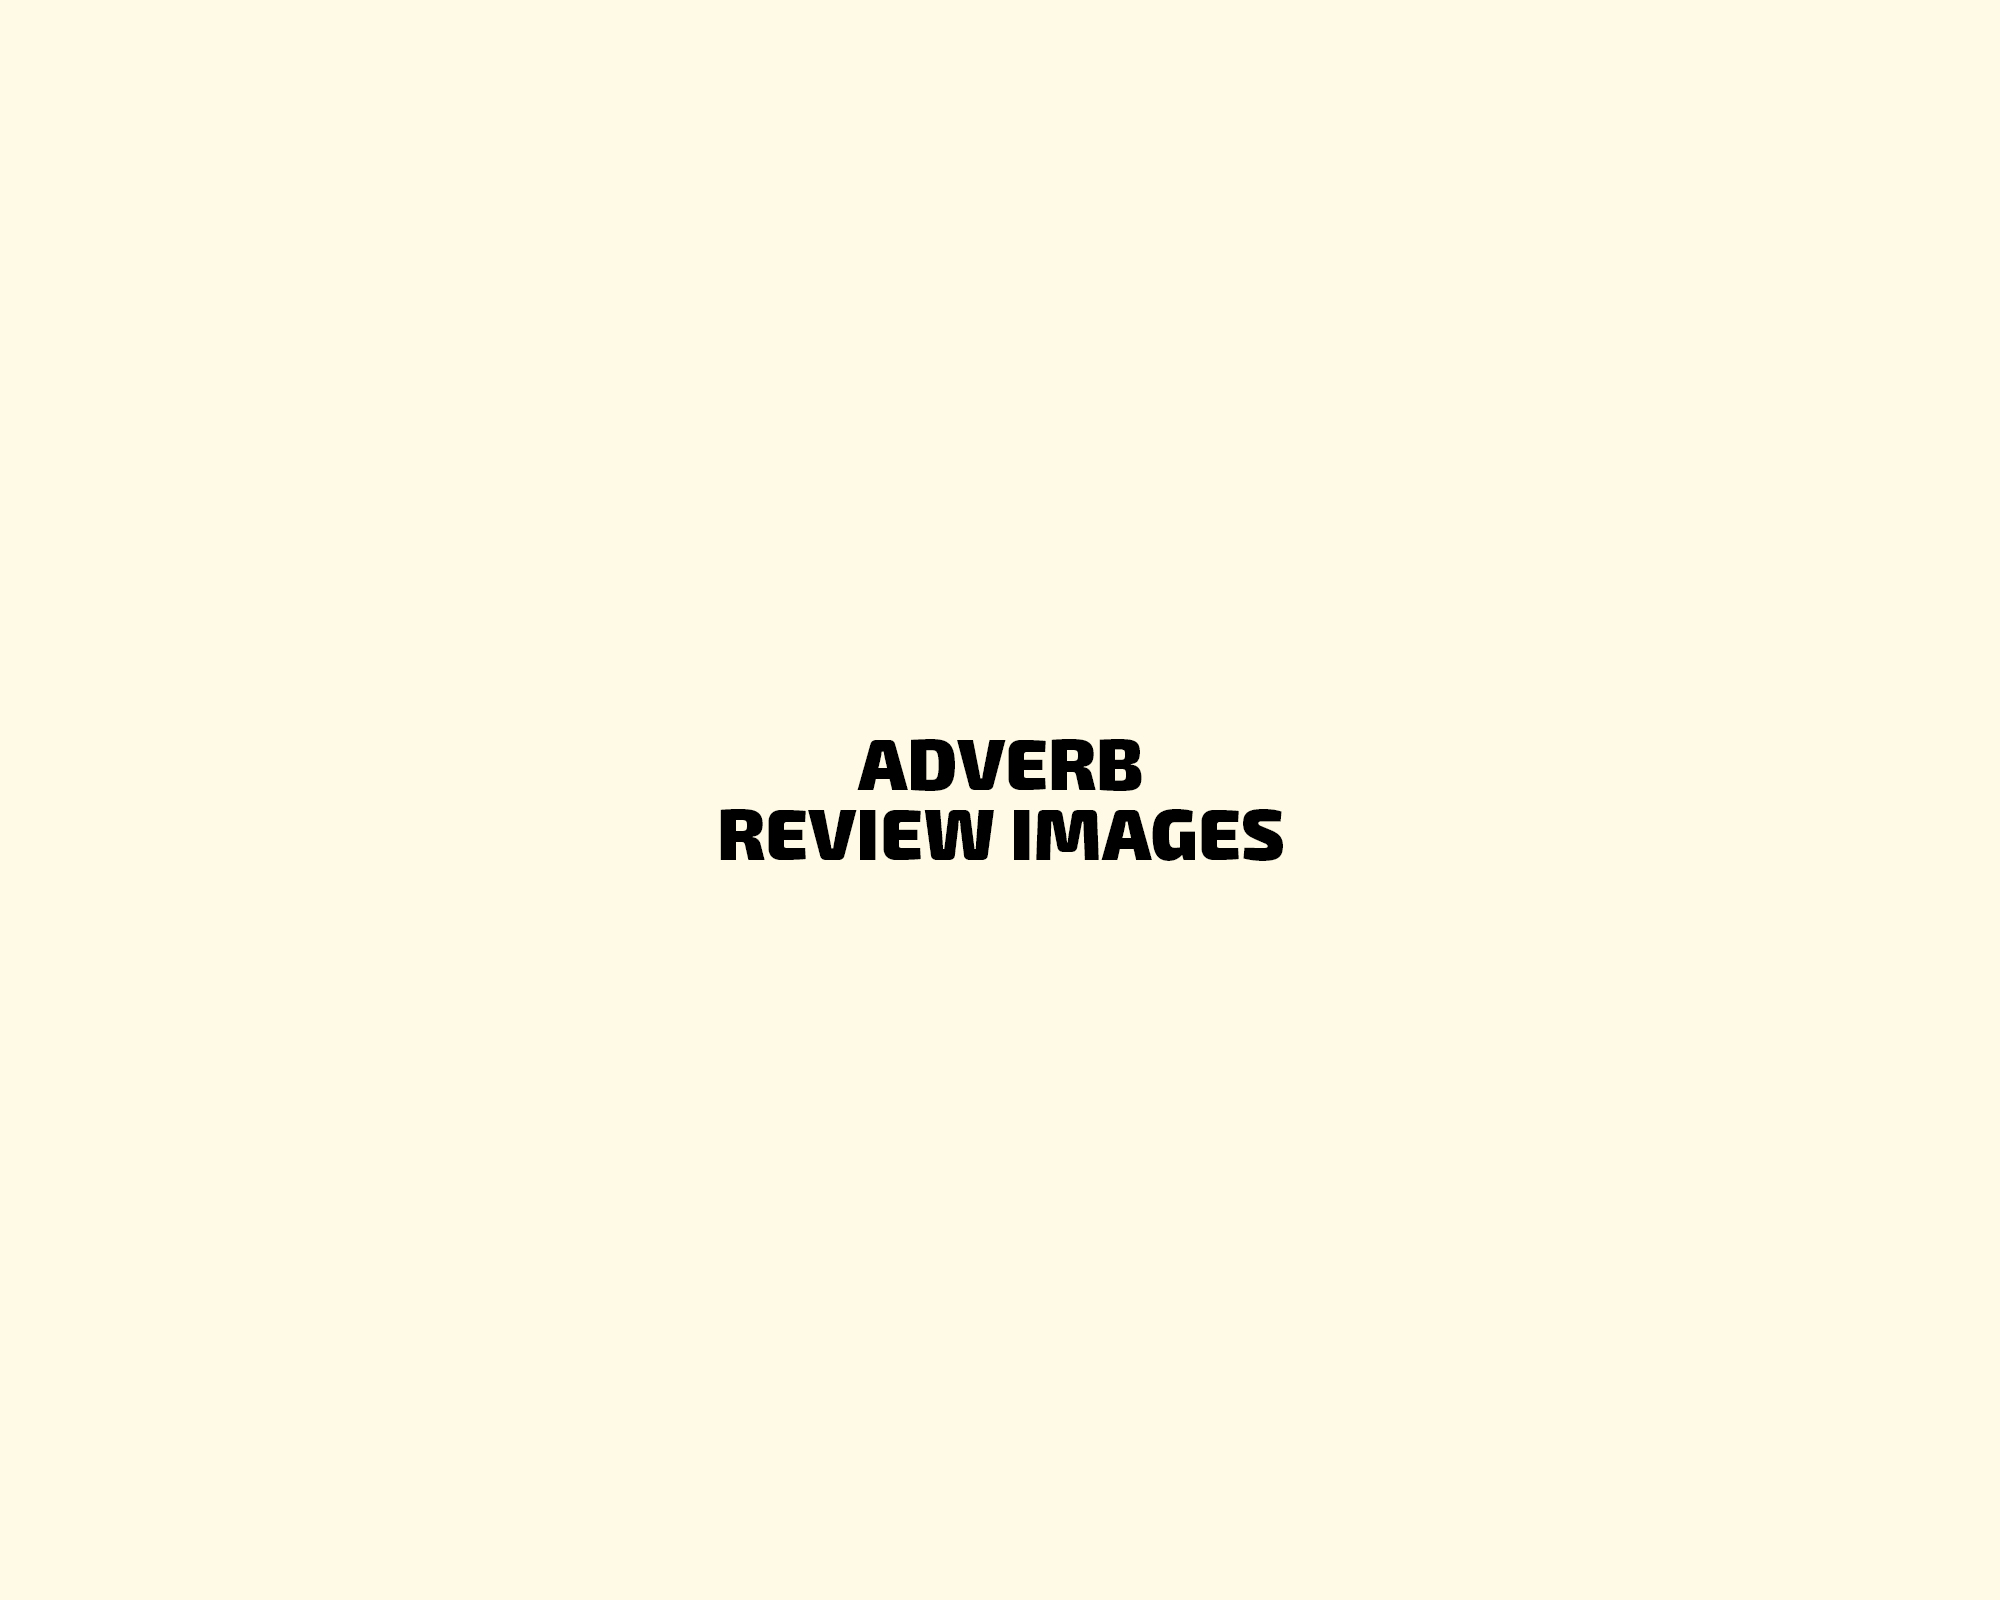 c-adverbs-gallery